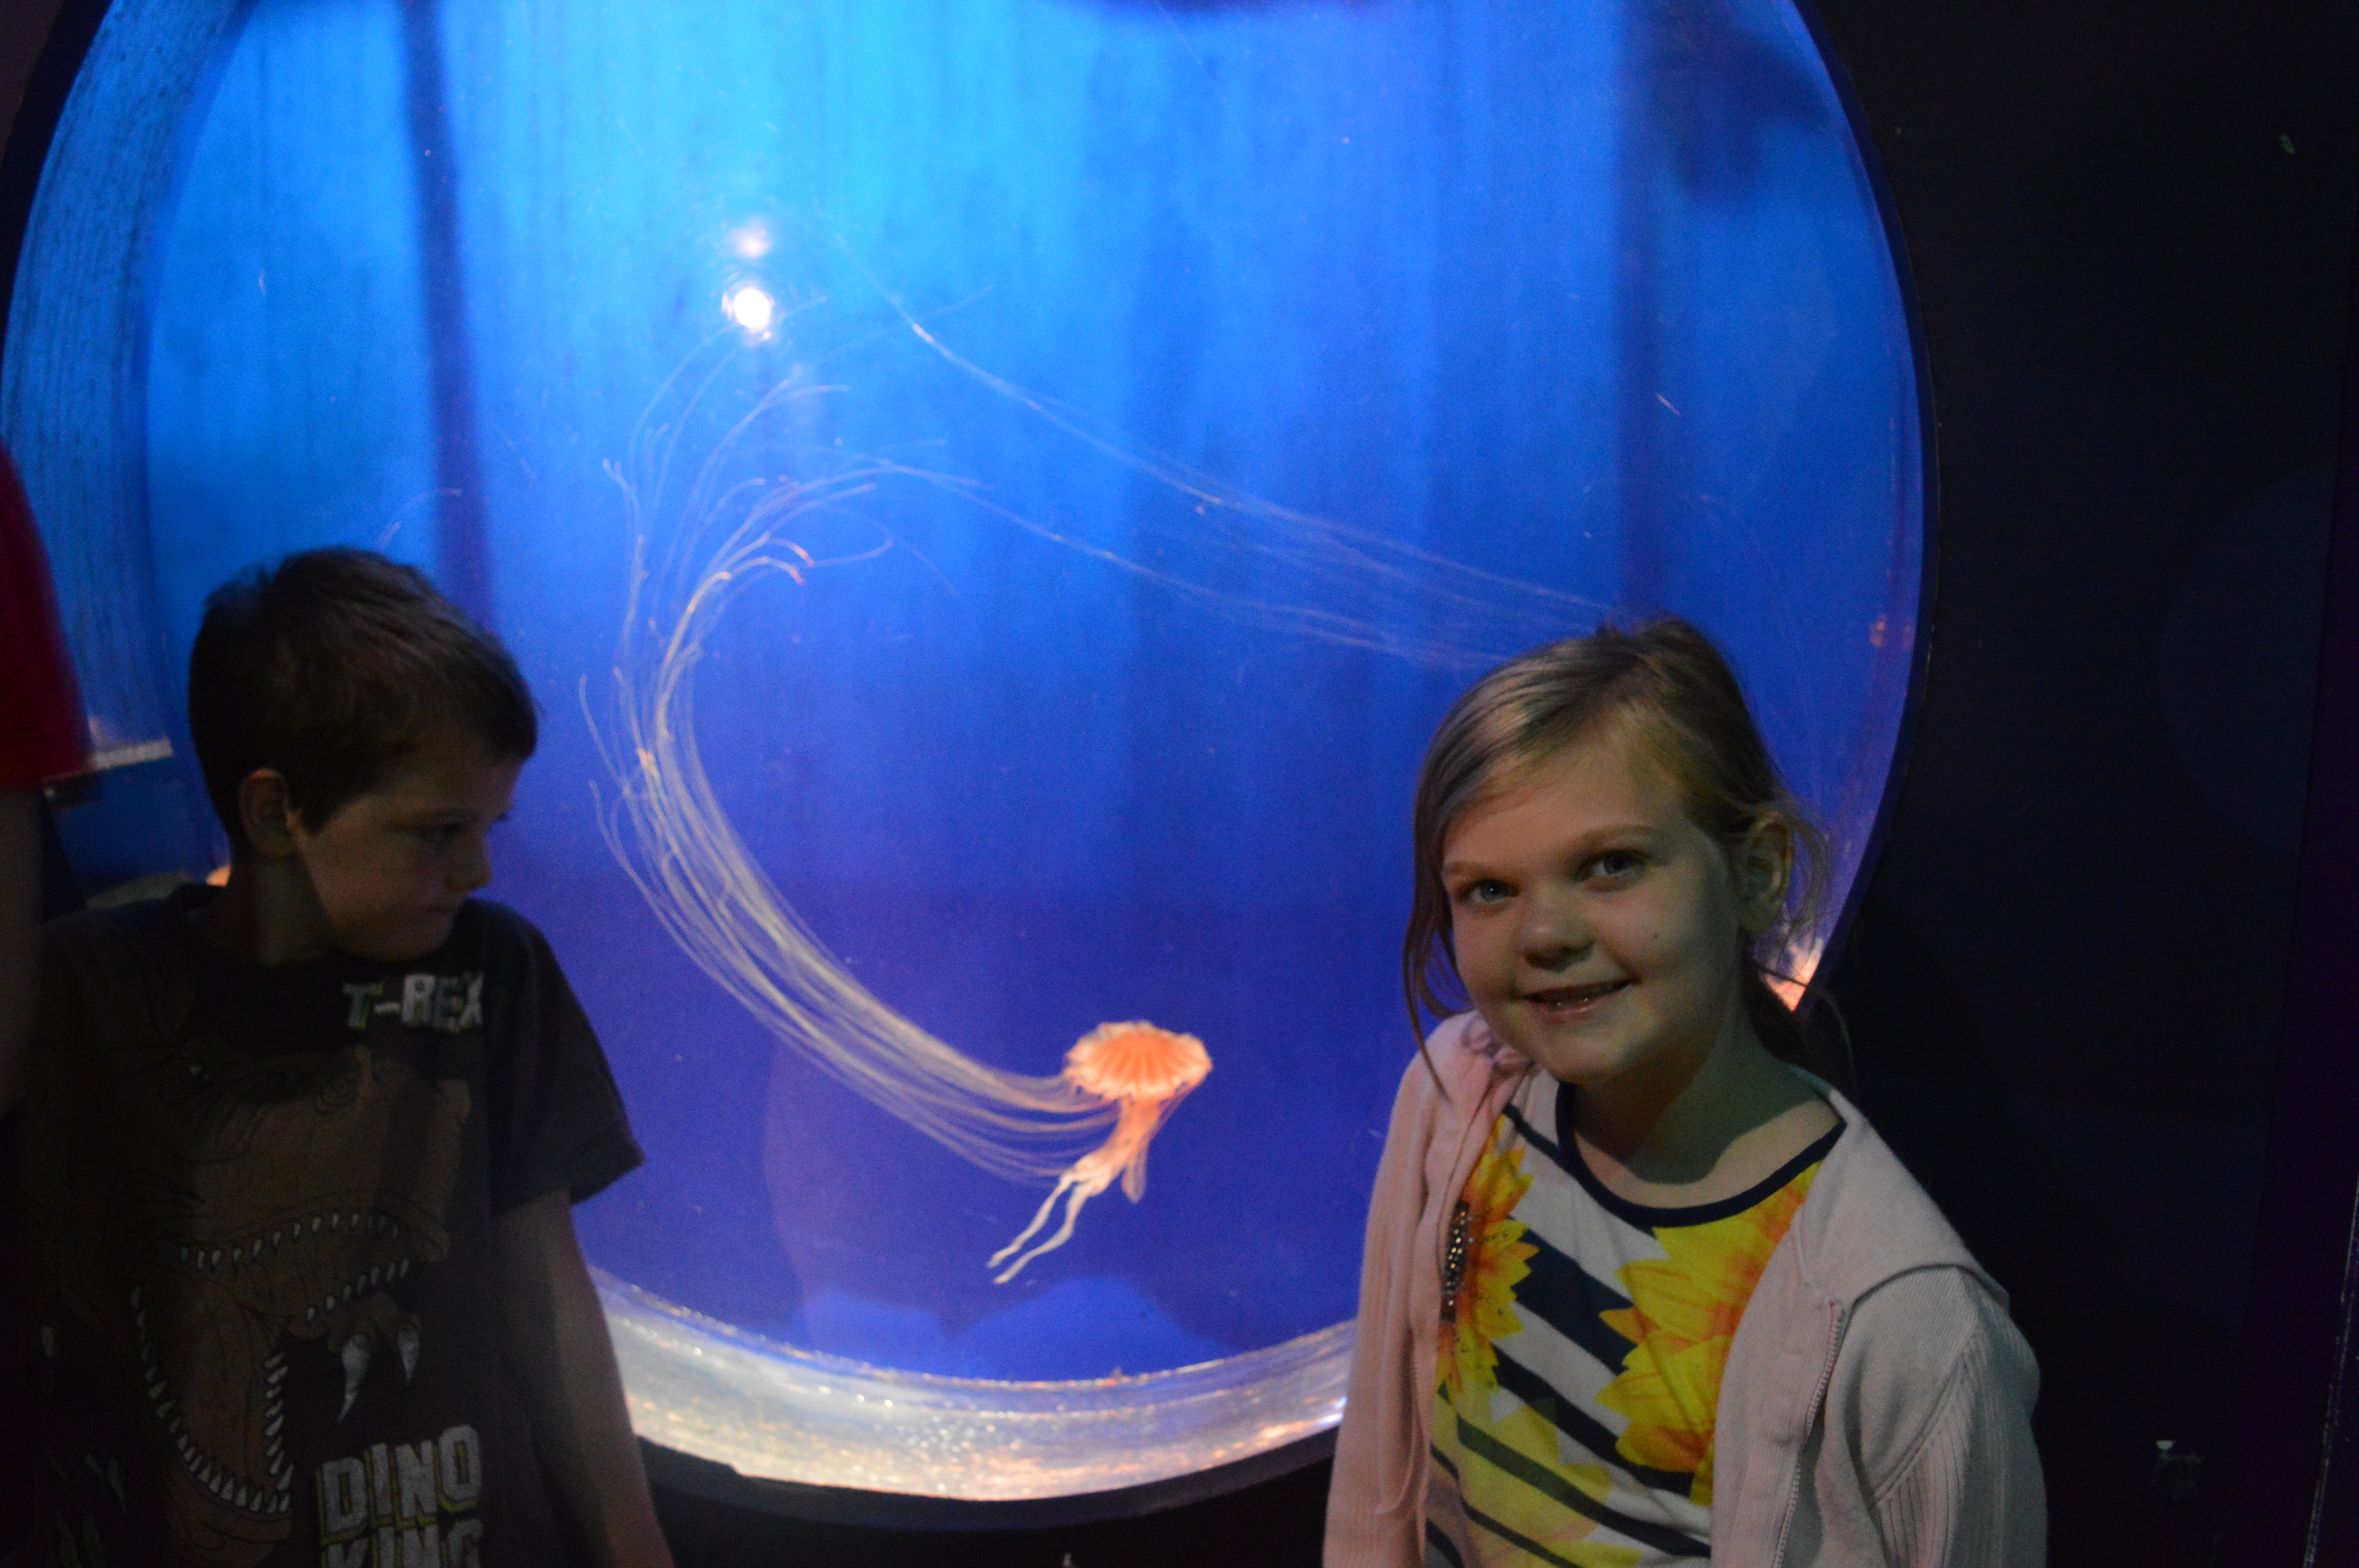 Kaide and Eowyn stood next to the jellyfish tank